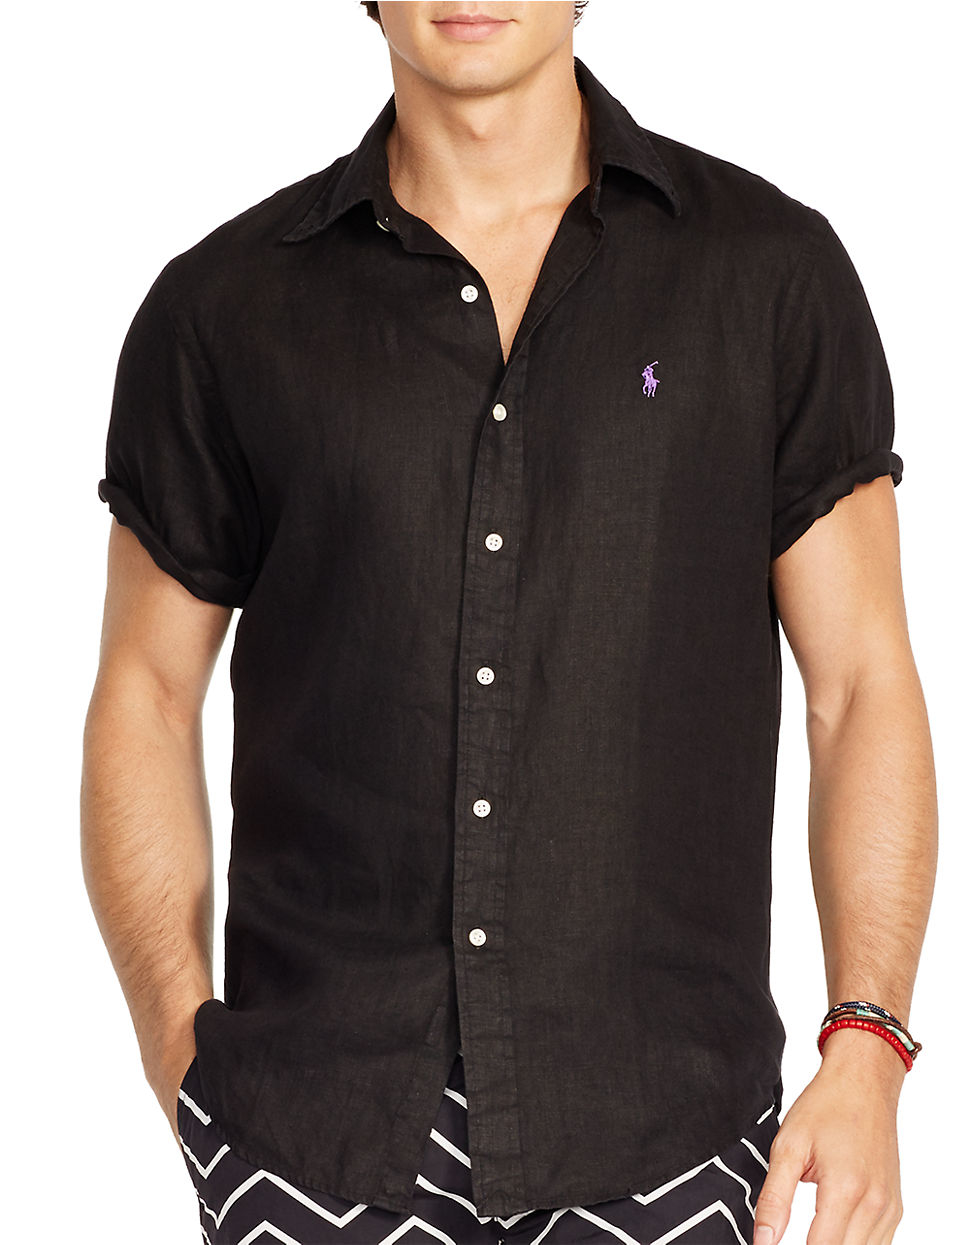 Polo ralph lauren Short-sleeved Linen Shirt in Black for ...